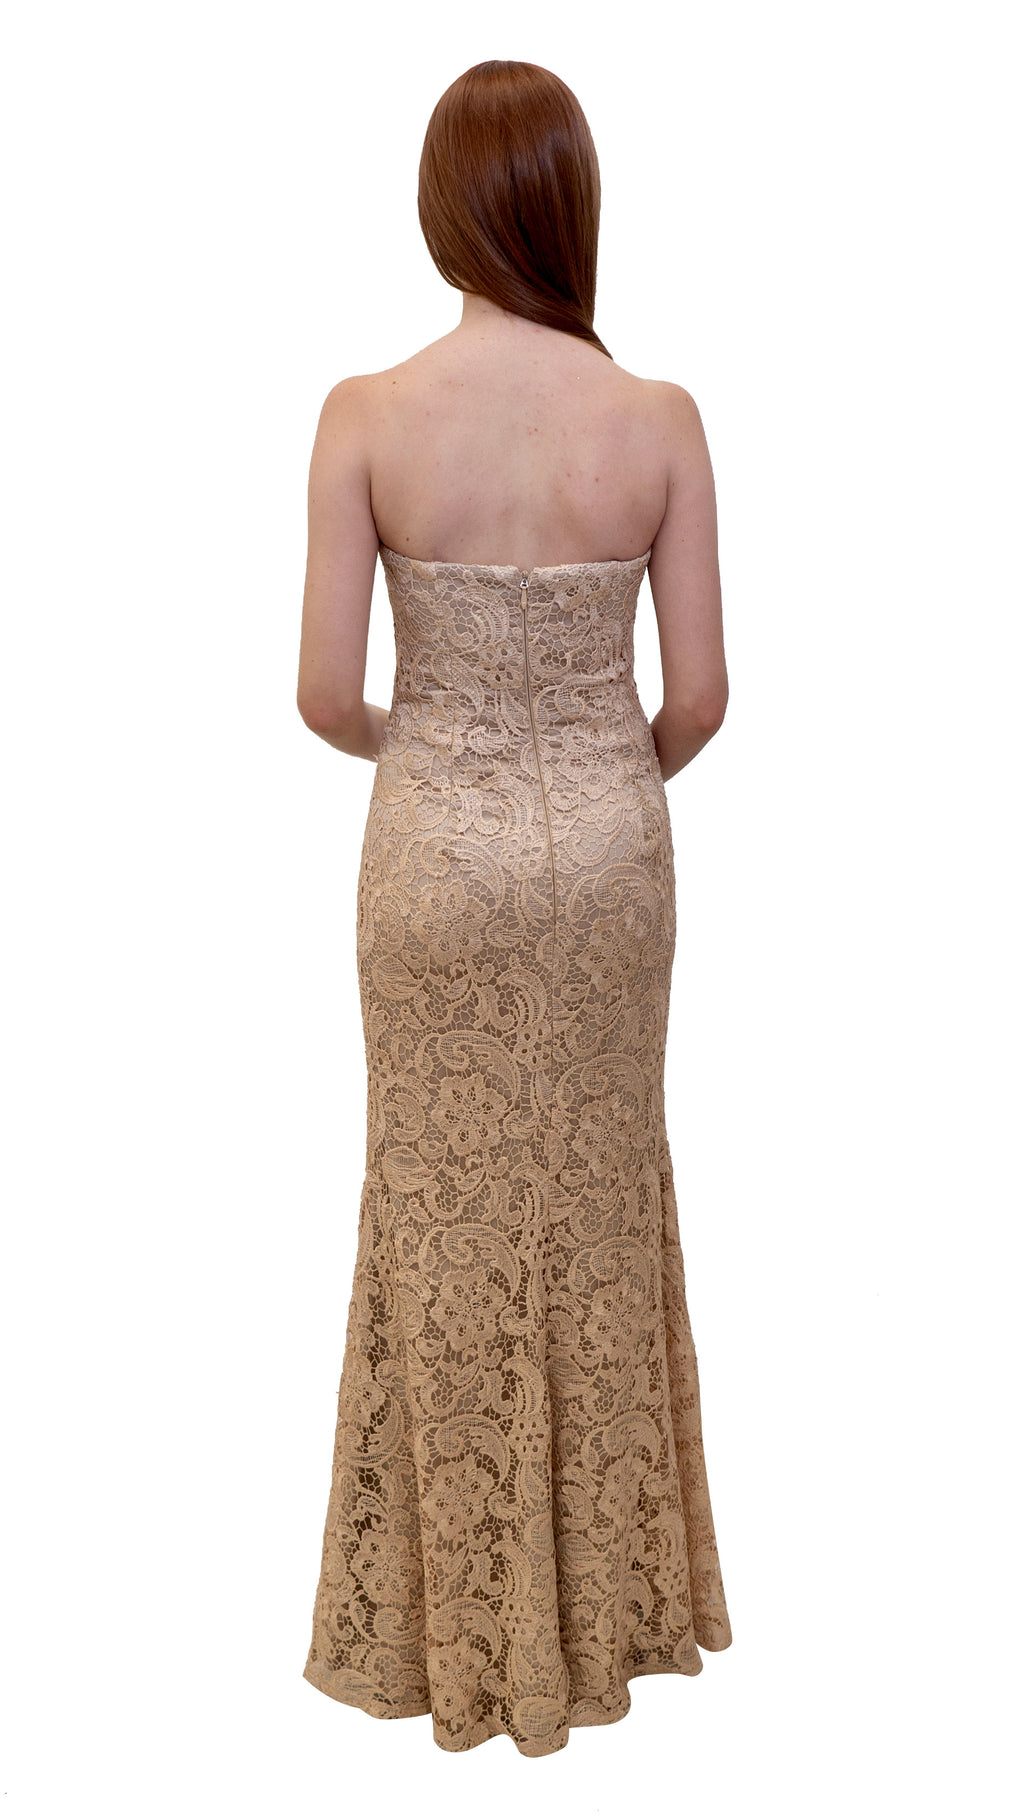 Bariano Strapless Lace Dress Metallic Blush back